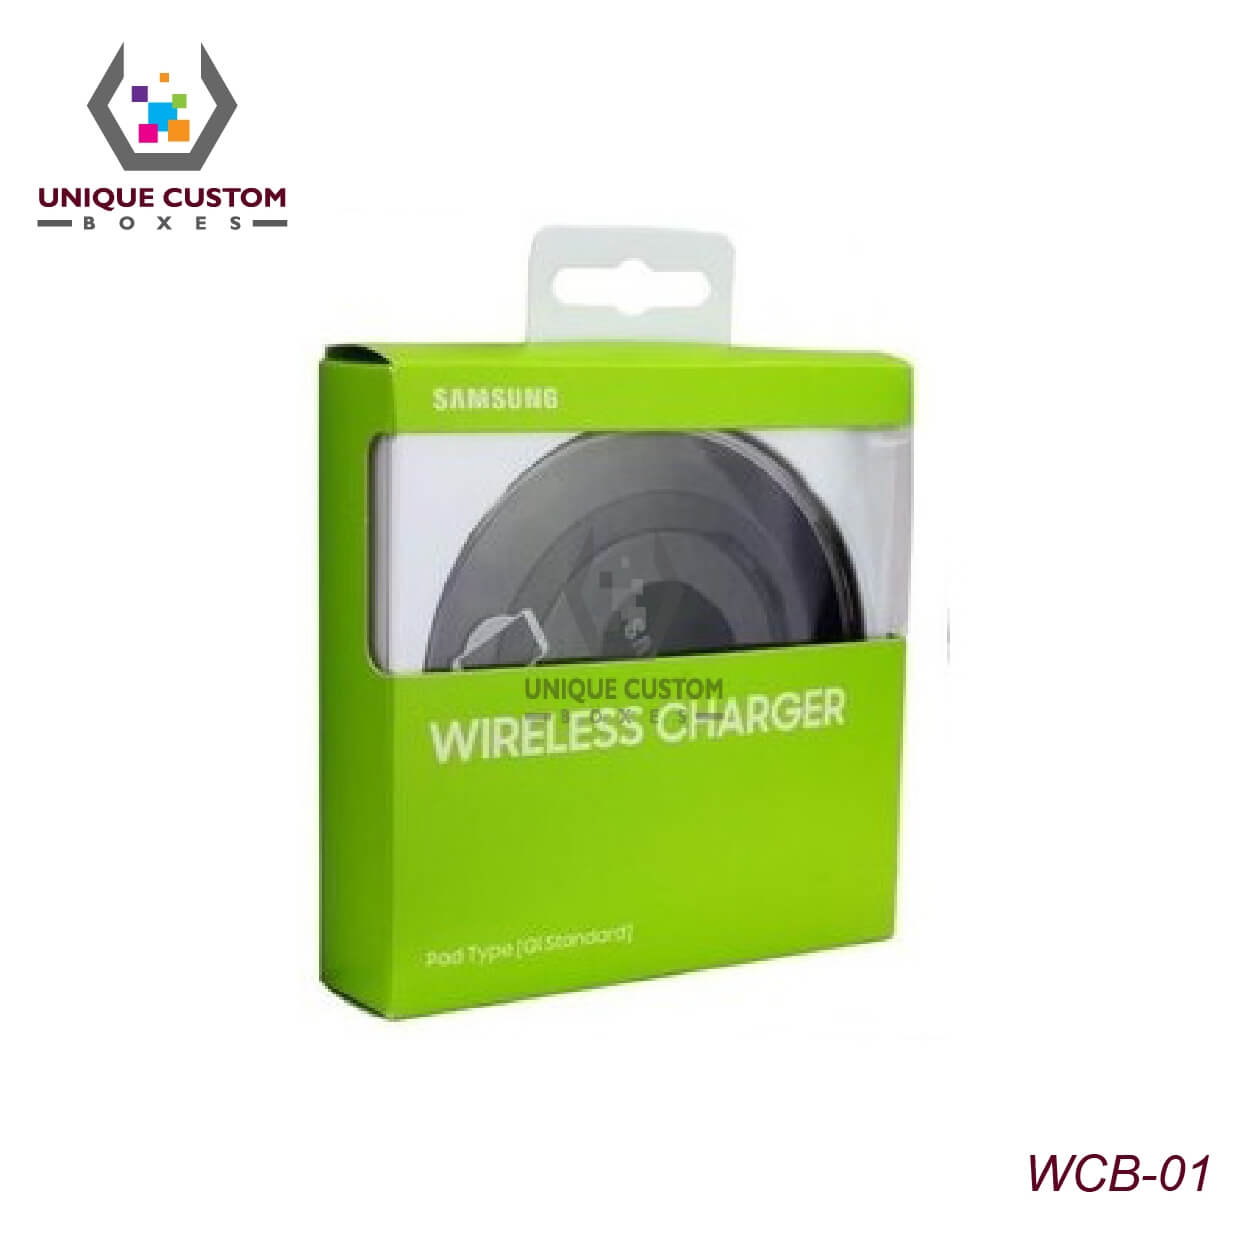 Wireless Charger Boxes-1